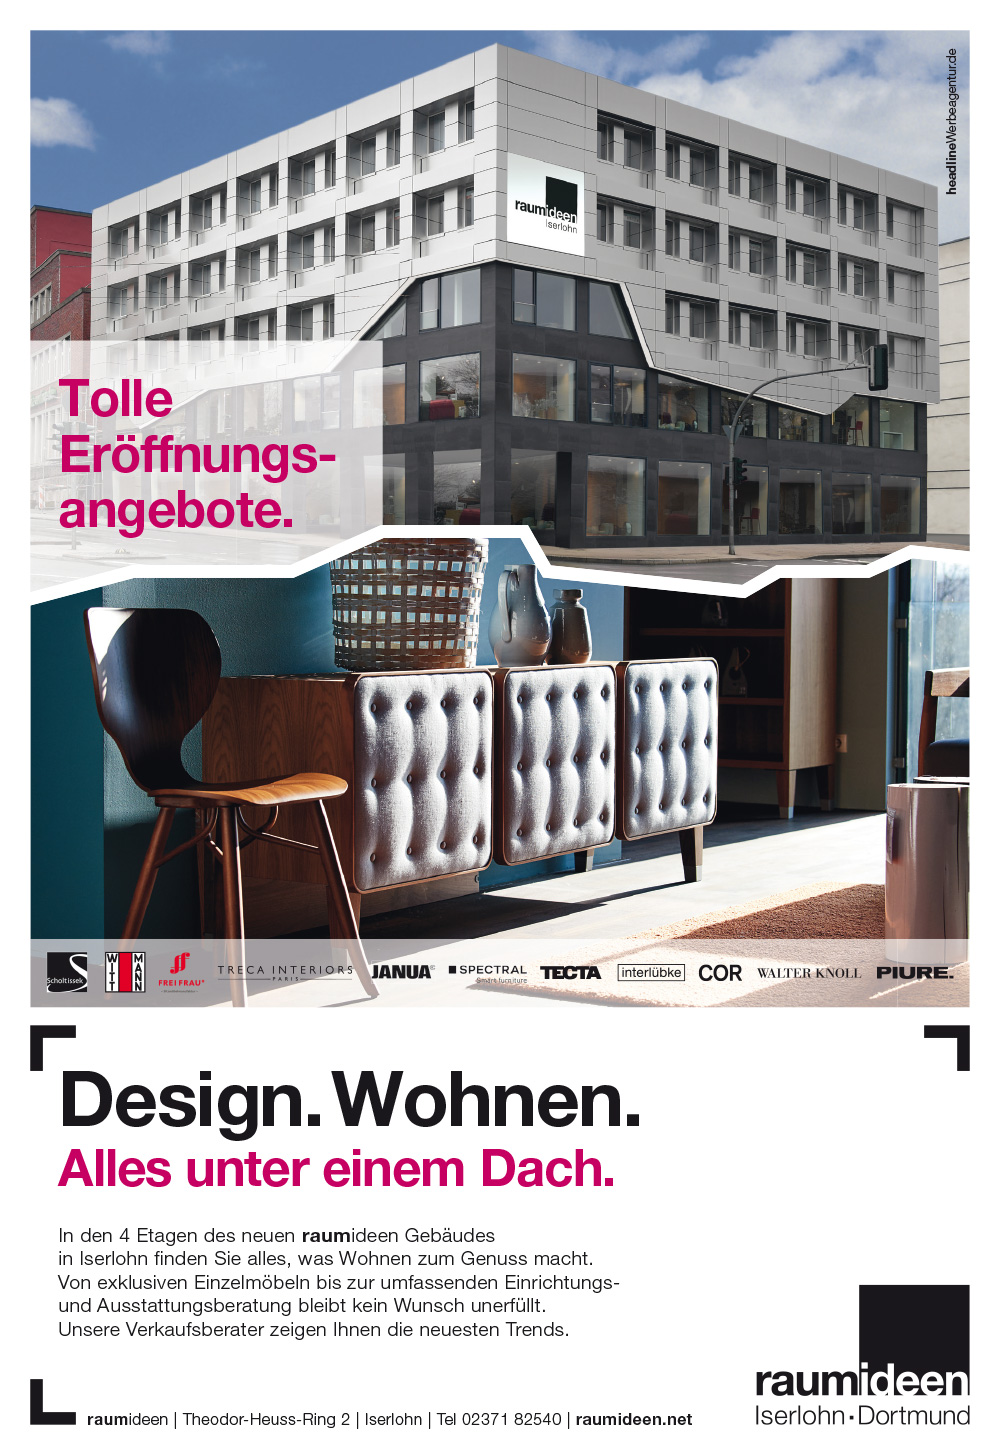 Raum Ideen raumideen change marketing kagne headline werbeagentur iserlohn